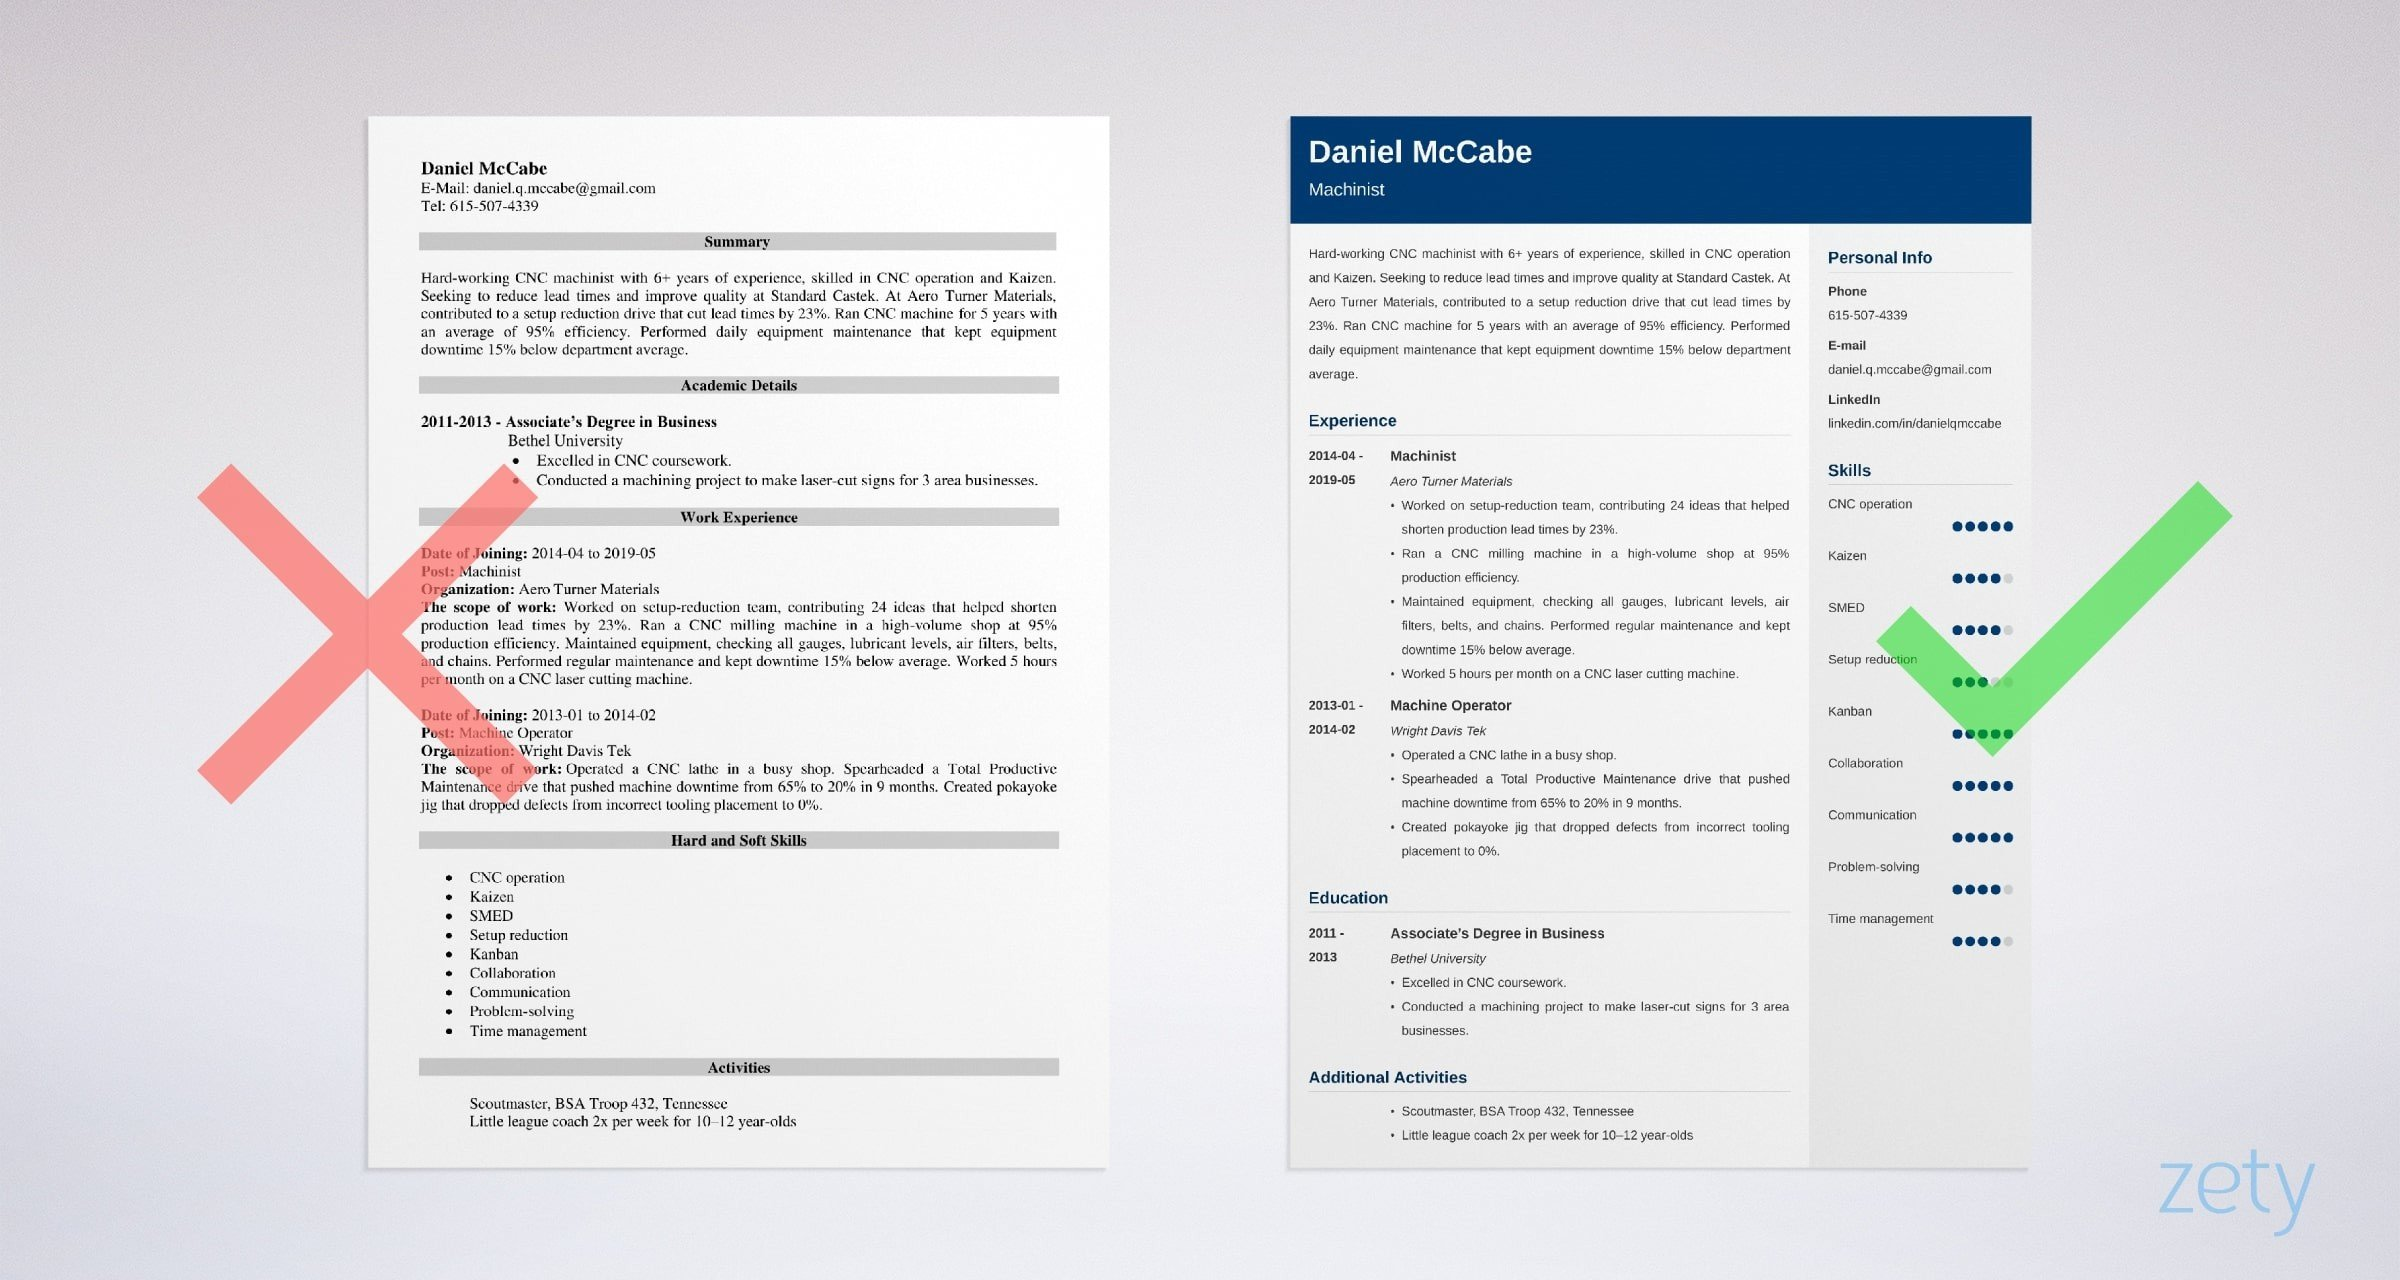 cnc machinist resume samples for machine operators tips entry level example general labor Resume Entry Level Machinist Resume